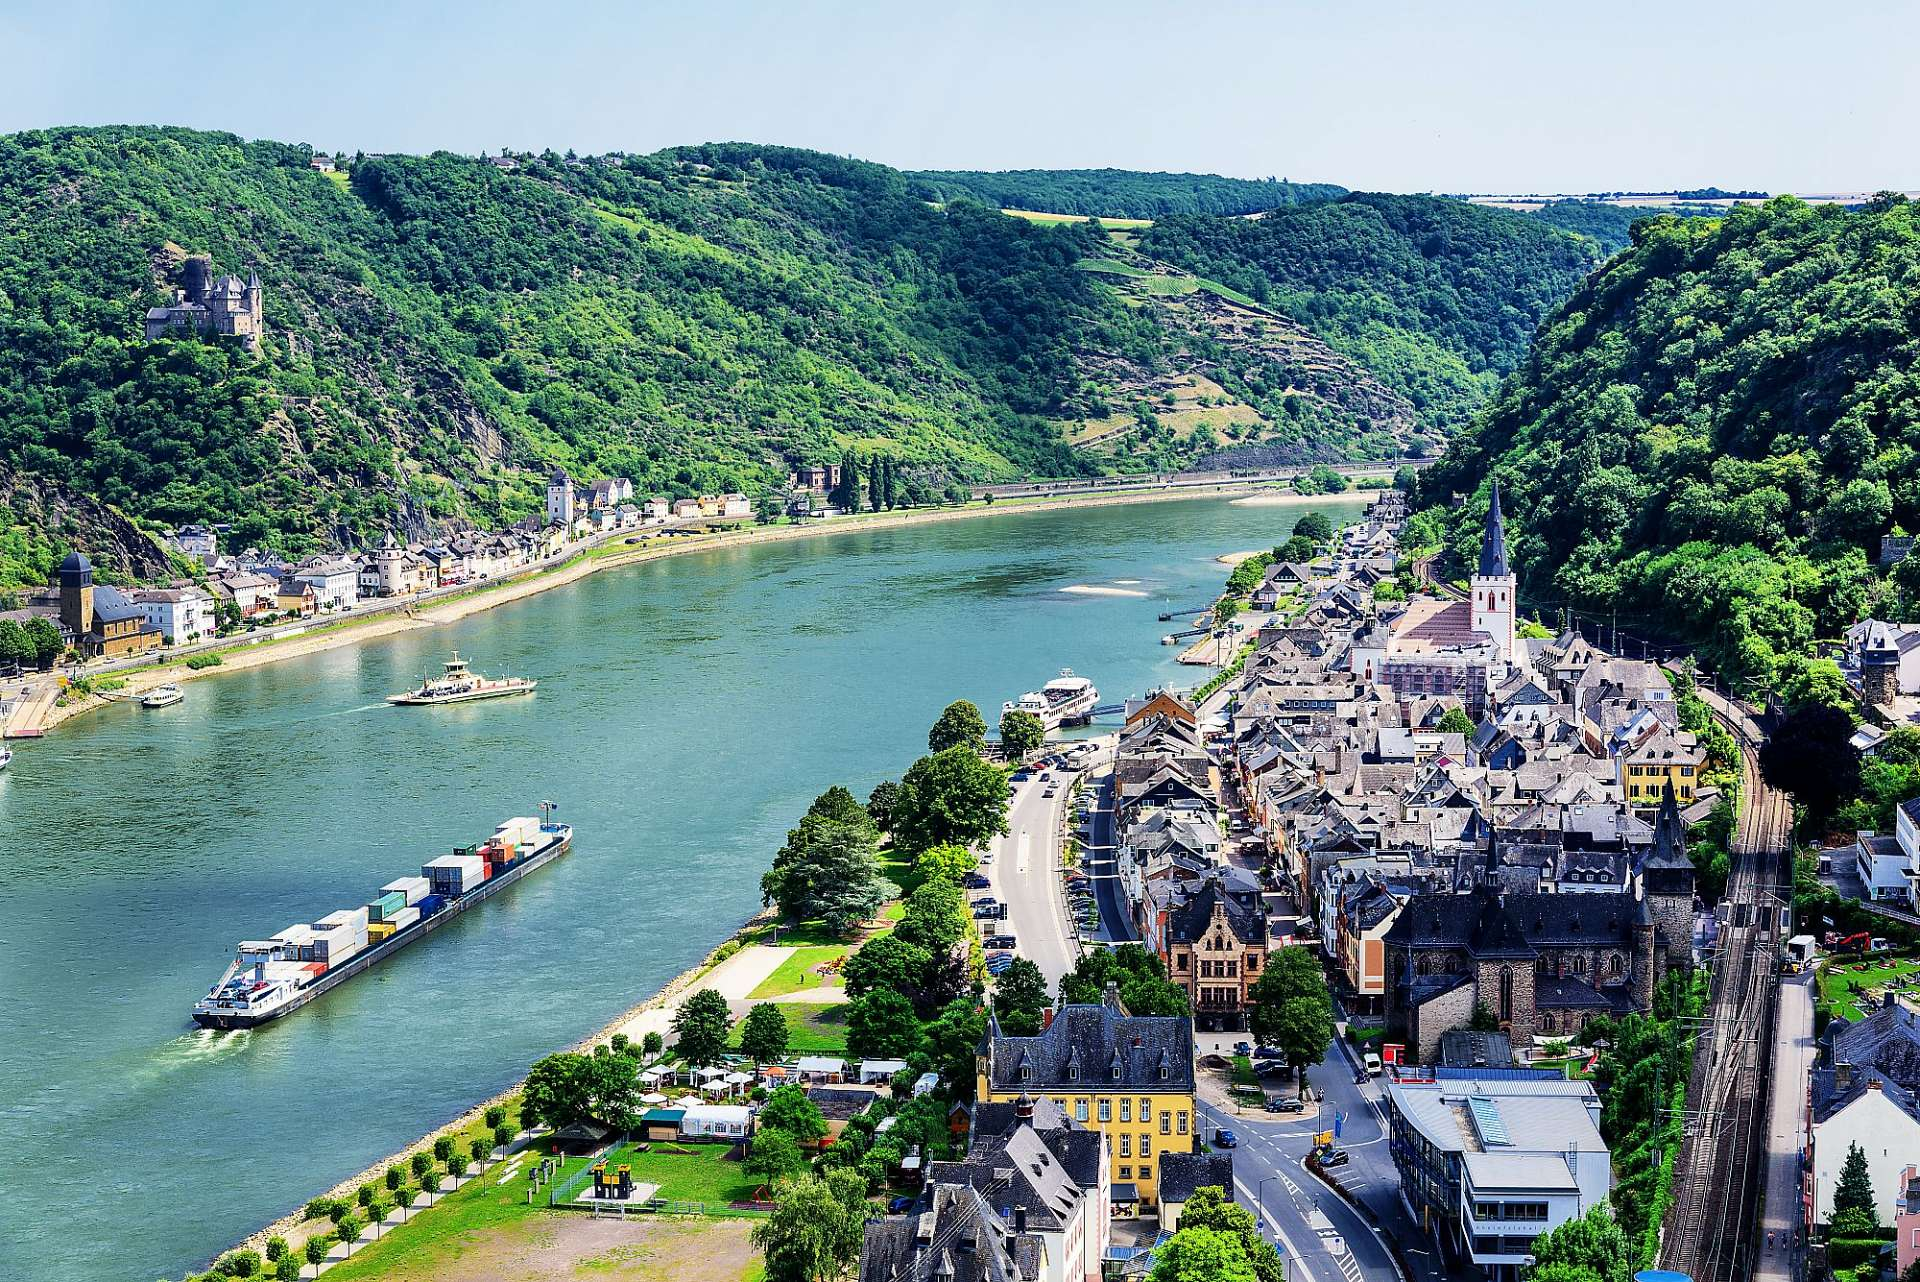 Medieval half-timbered town: St. Goar